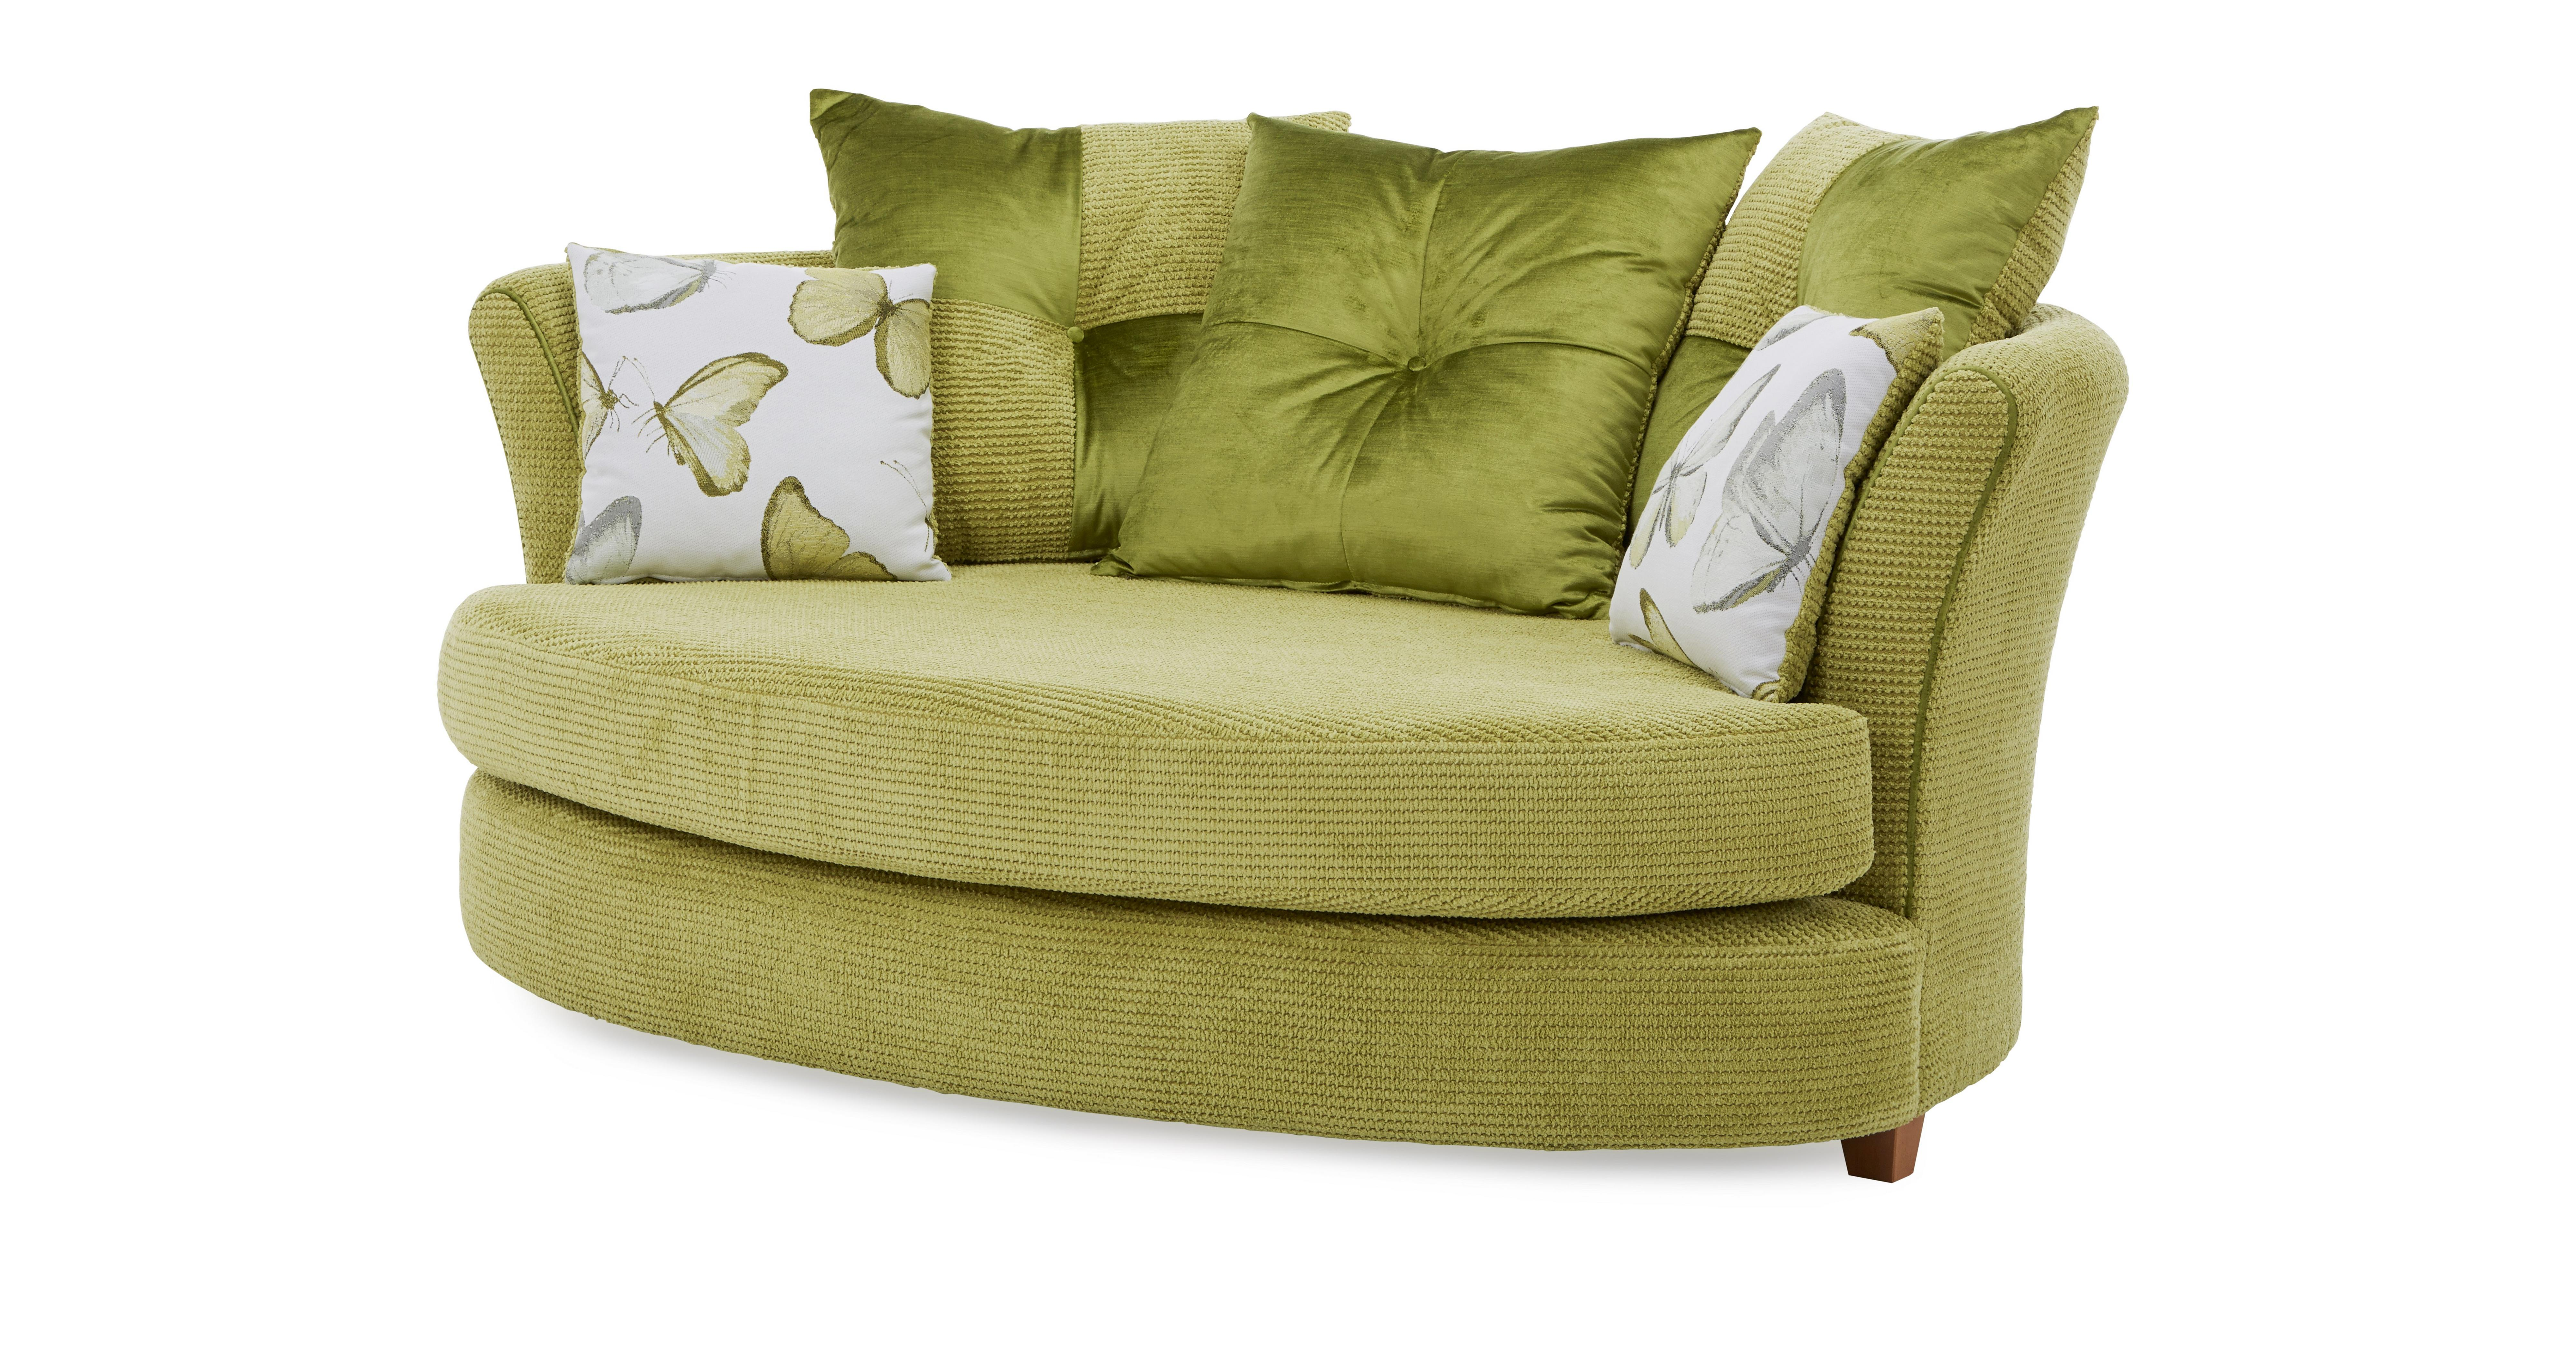 patterned sofas uk sofa cloud lema dfs alegra lime green fabric cuddler and